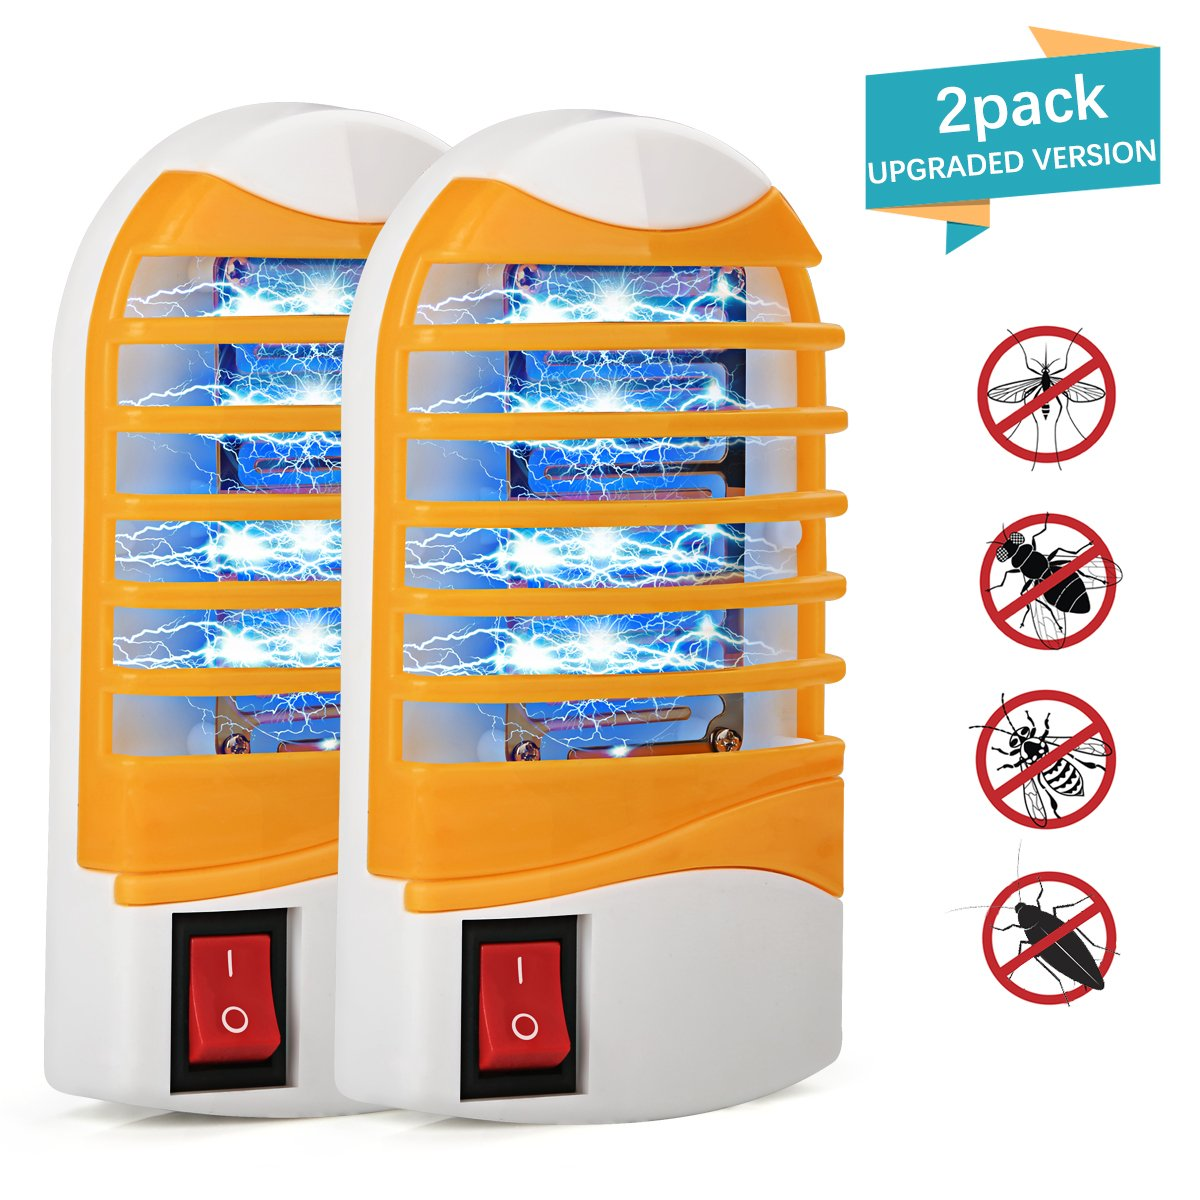 Kungber Bug Zapper, Upgraded Mosquitoes Killer, Indoor Mosquito Zapper Bug Light, Plug-in Electronic Insect Gnat Flying bugs Killer Trap, for Bedroom Home Porch with Blue Night Light (Pack of 2)